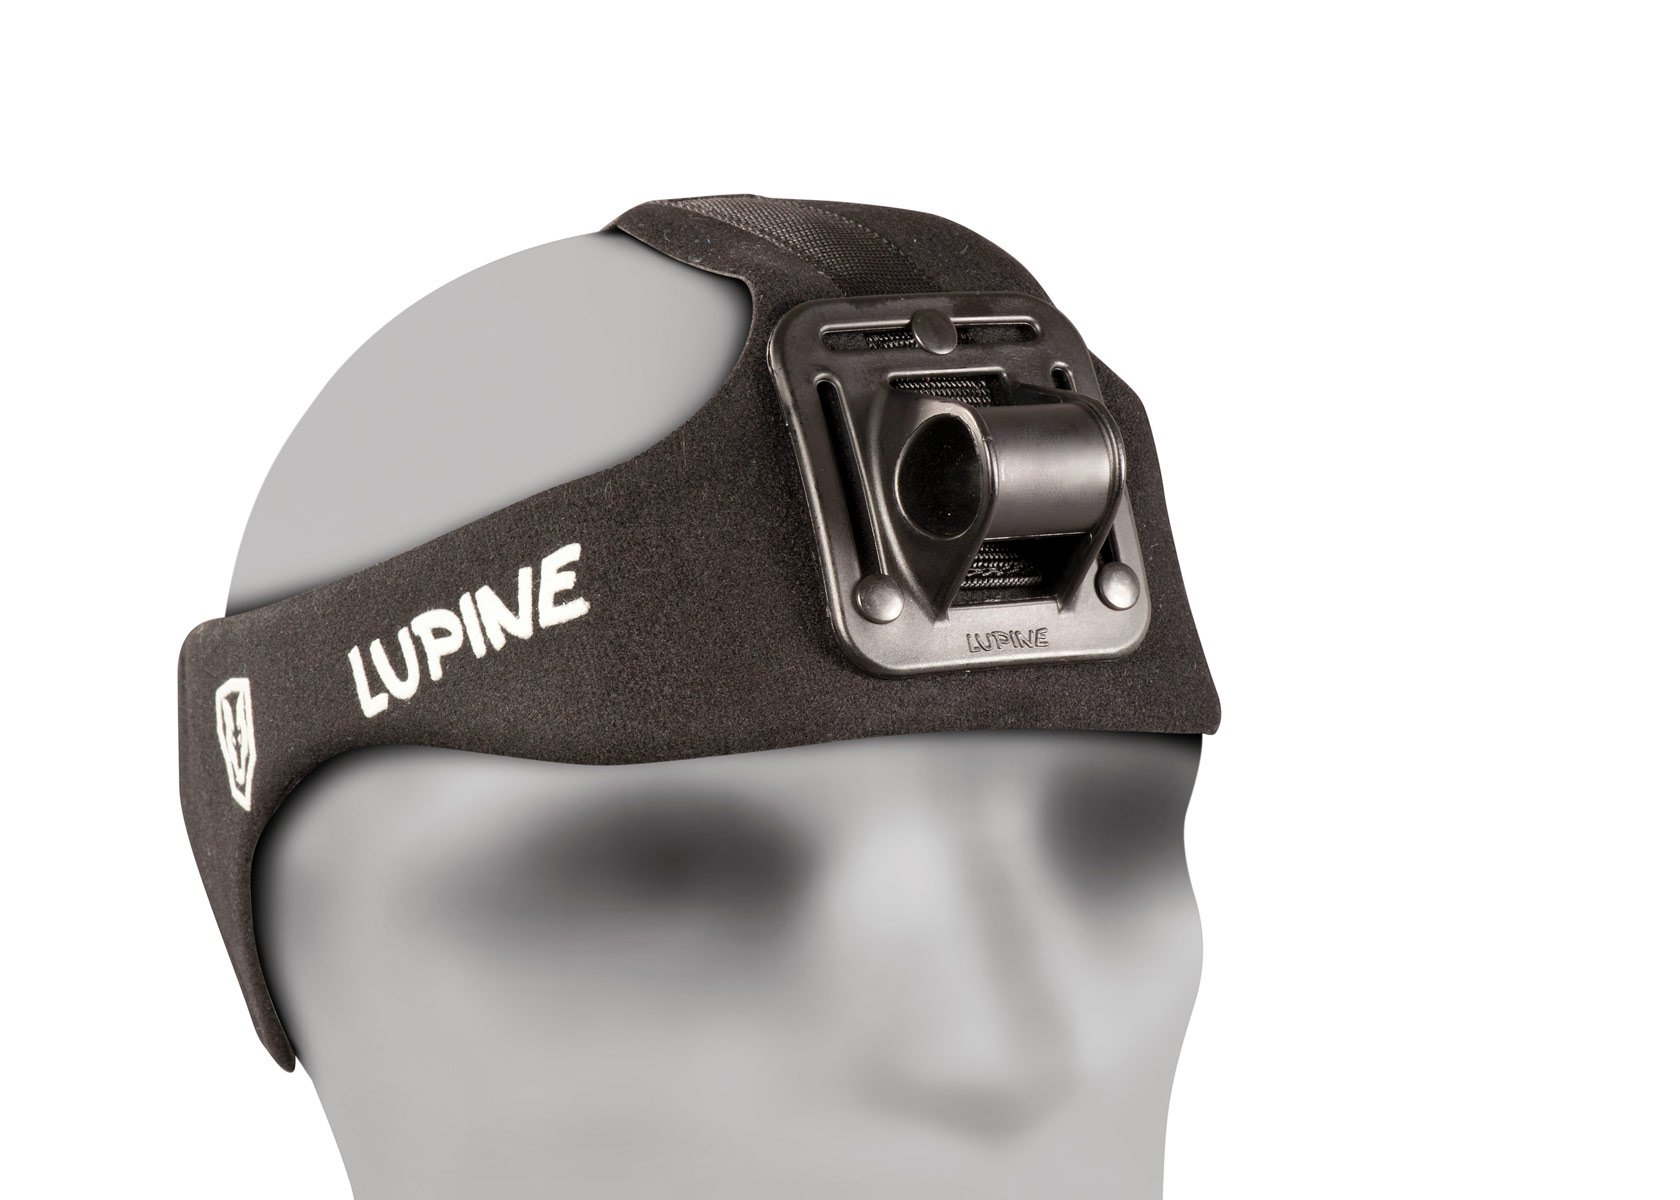 Lupine Lighting Systems Wilma RX 14 HD Headlamp, 3200 Lumens, LED, Bluetooth Control, Heavy Duty Headband, Rechargeable 13.2 Ah SmartCore Lithium-ion Battery by Lupine Lighting Systems (Image #8)